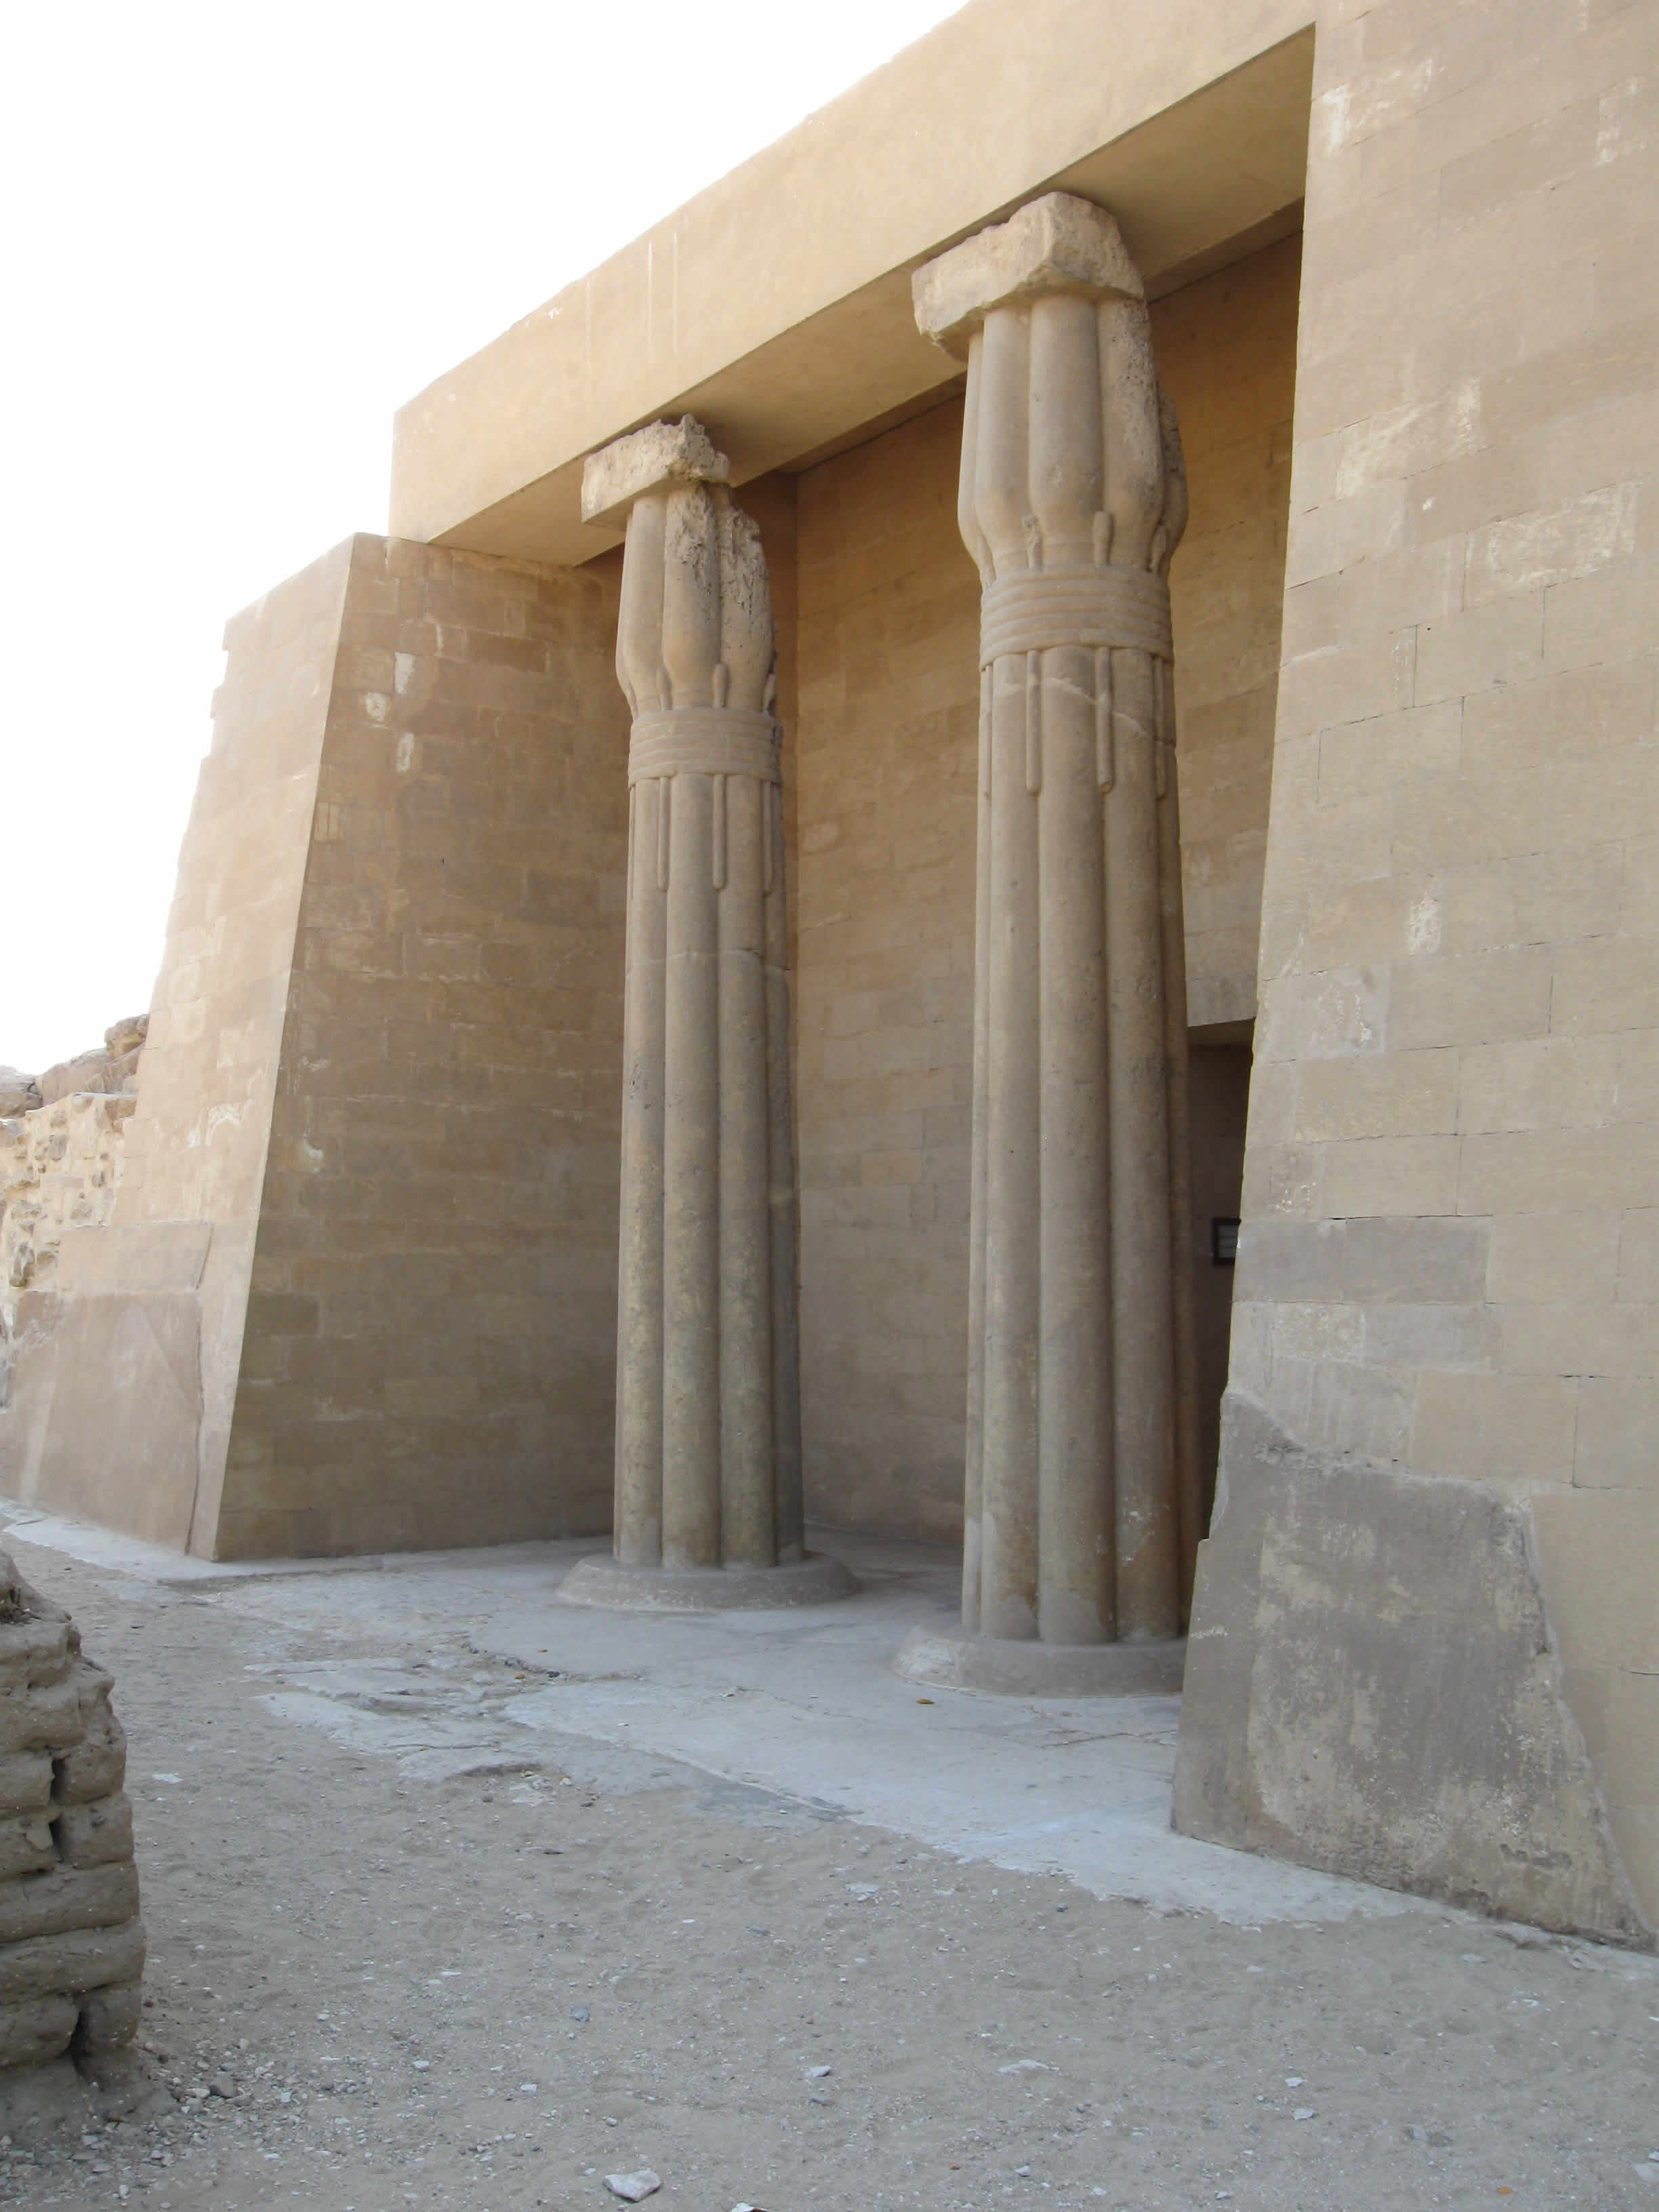 The Restored Entrance of Ptahshepeses